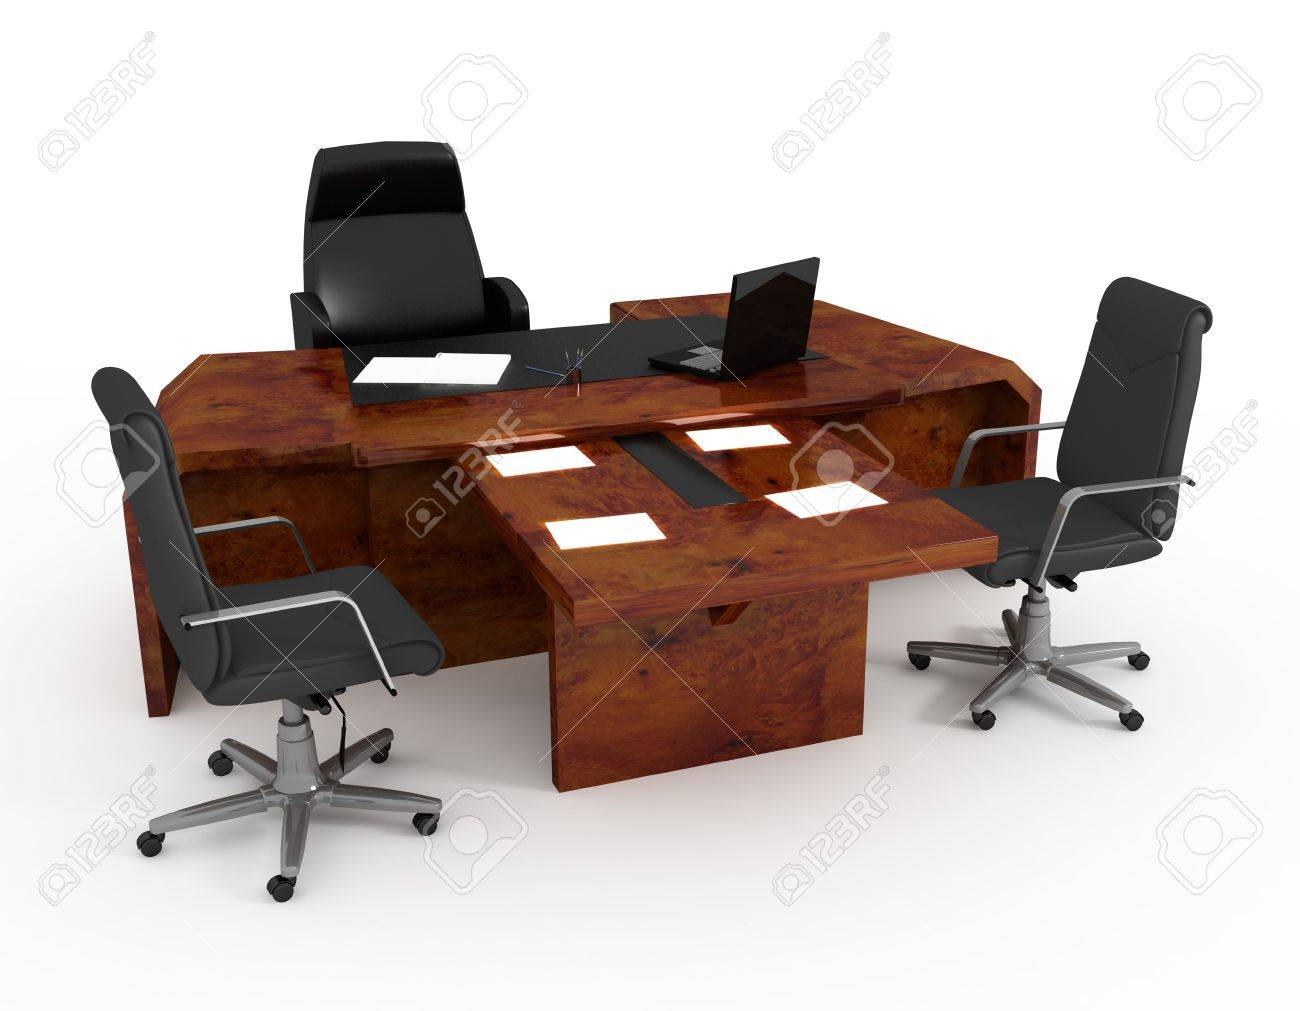 set of office furniture on a white background stock photo, picture